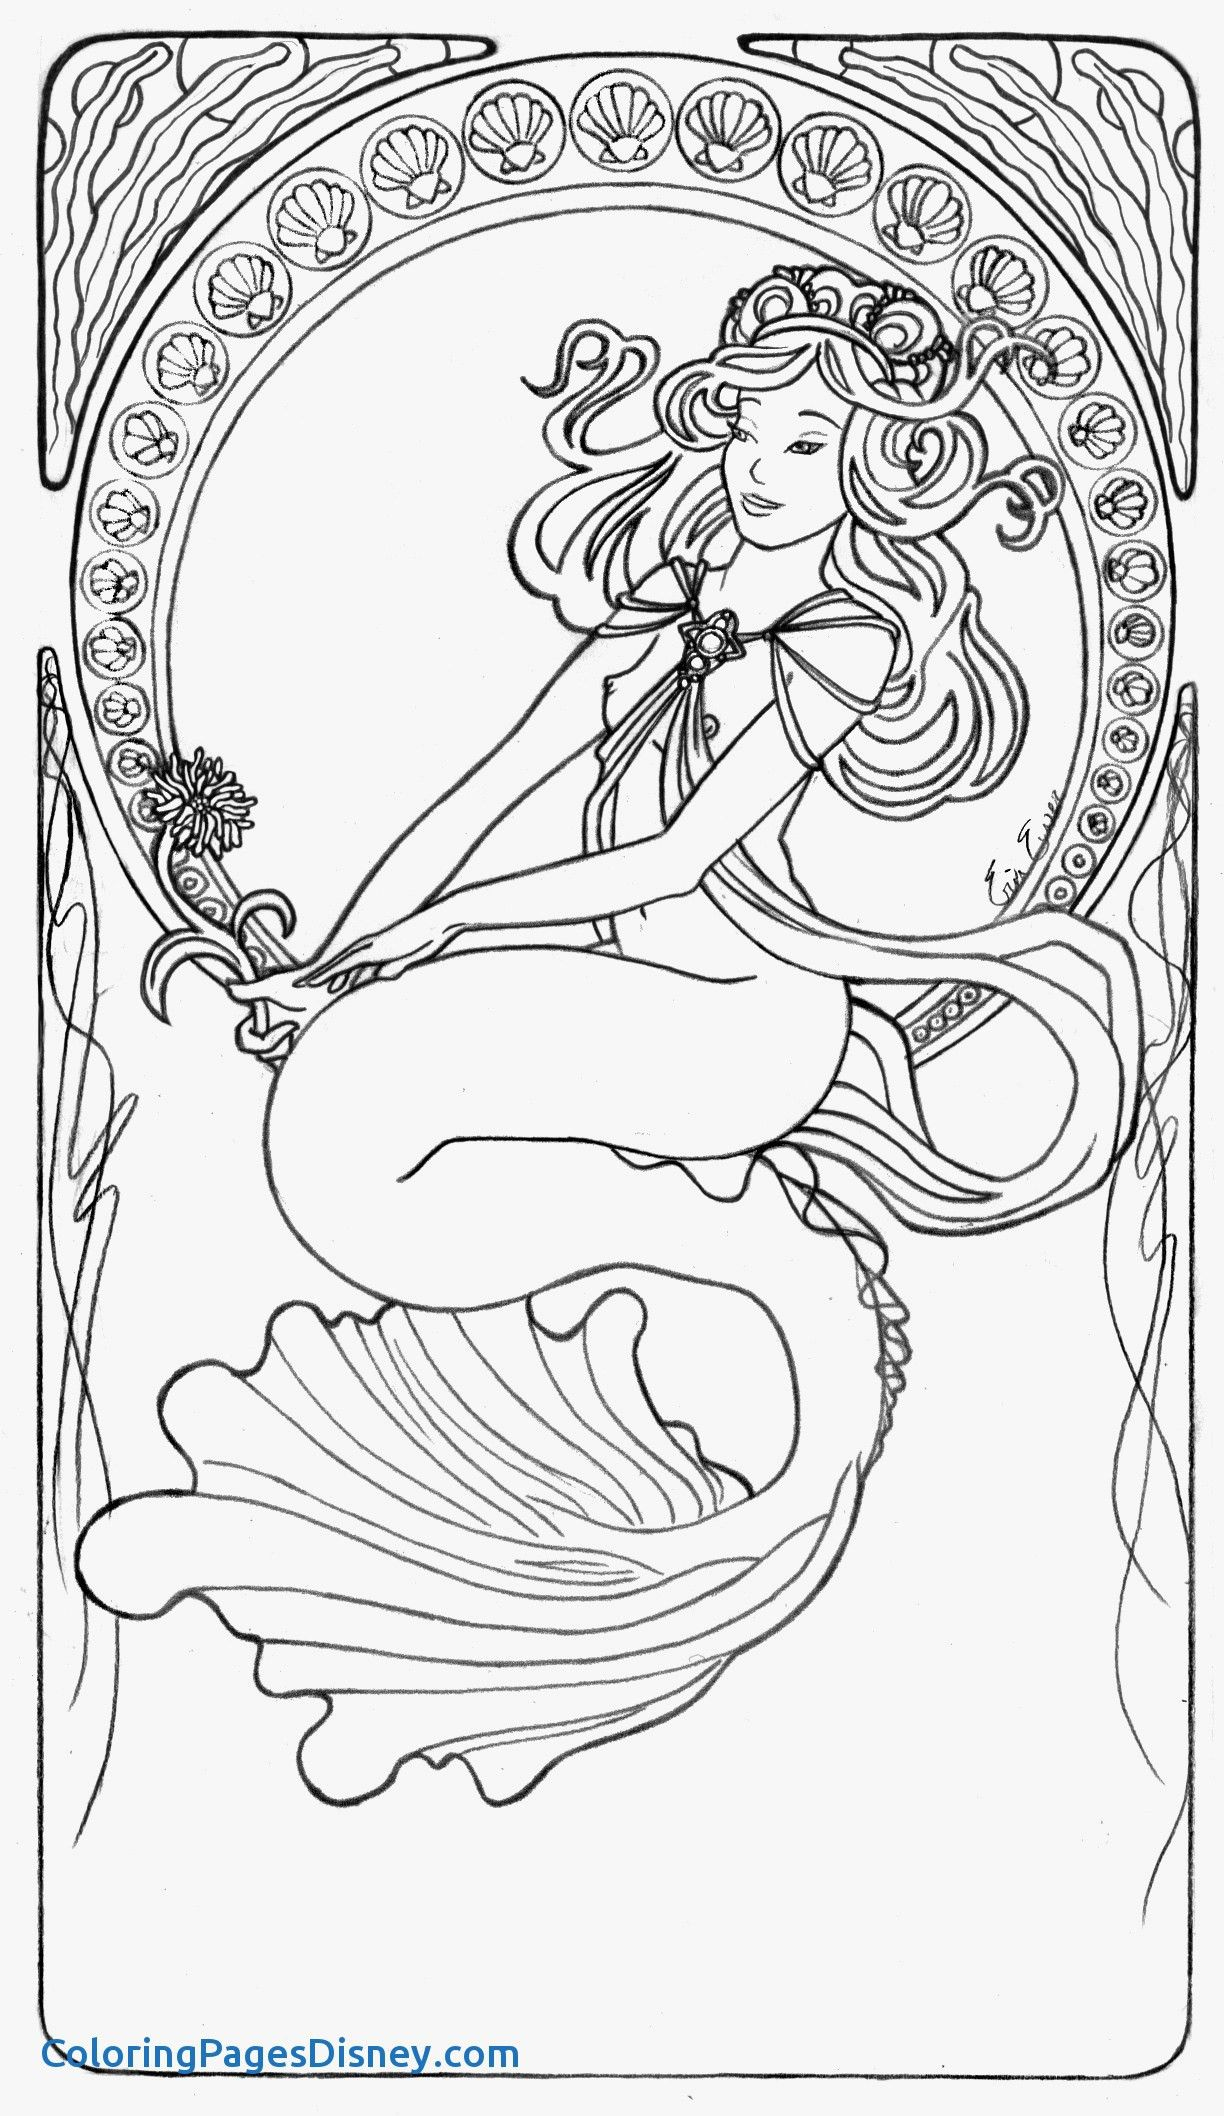 free mermaid coloring pages the little mermaid coloring pages to download and print mermaid pages coloring free